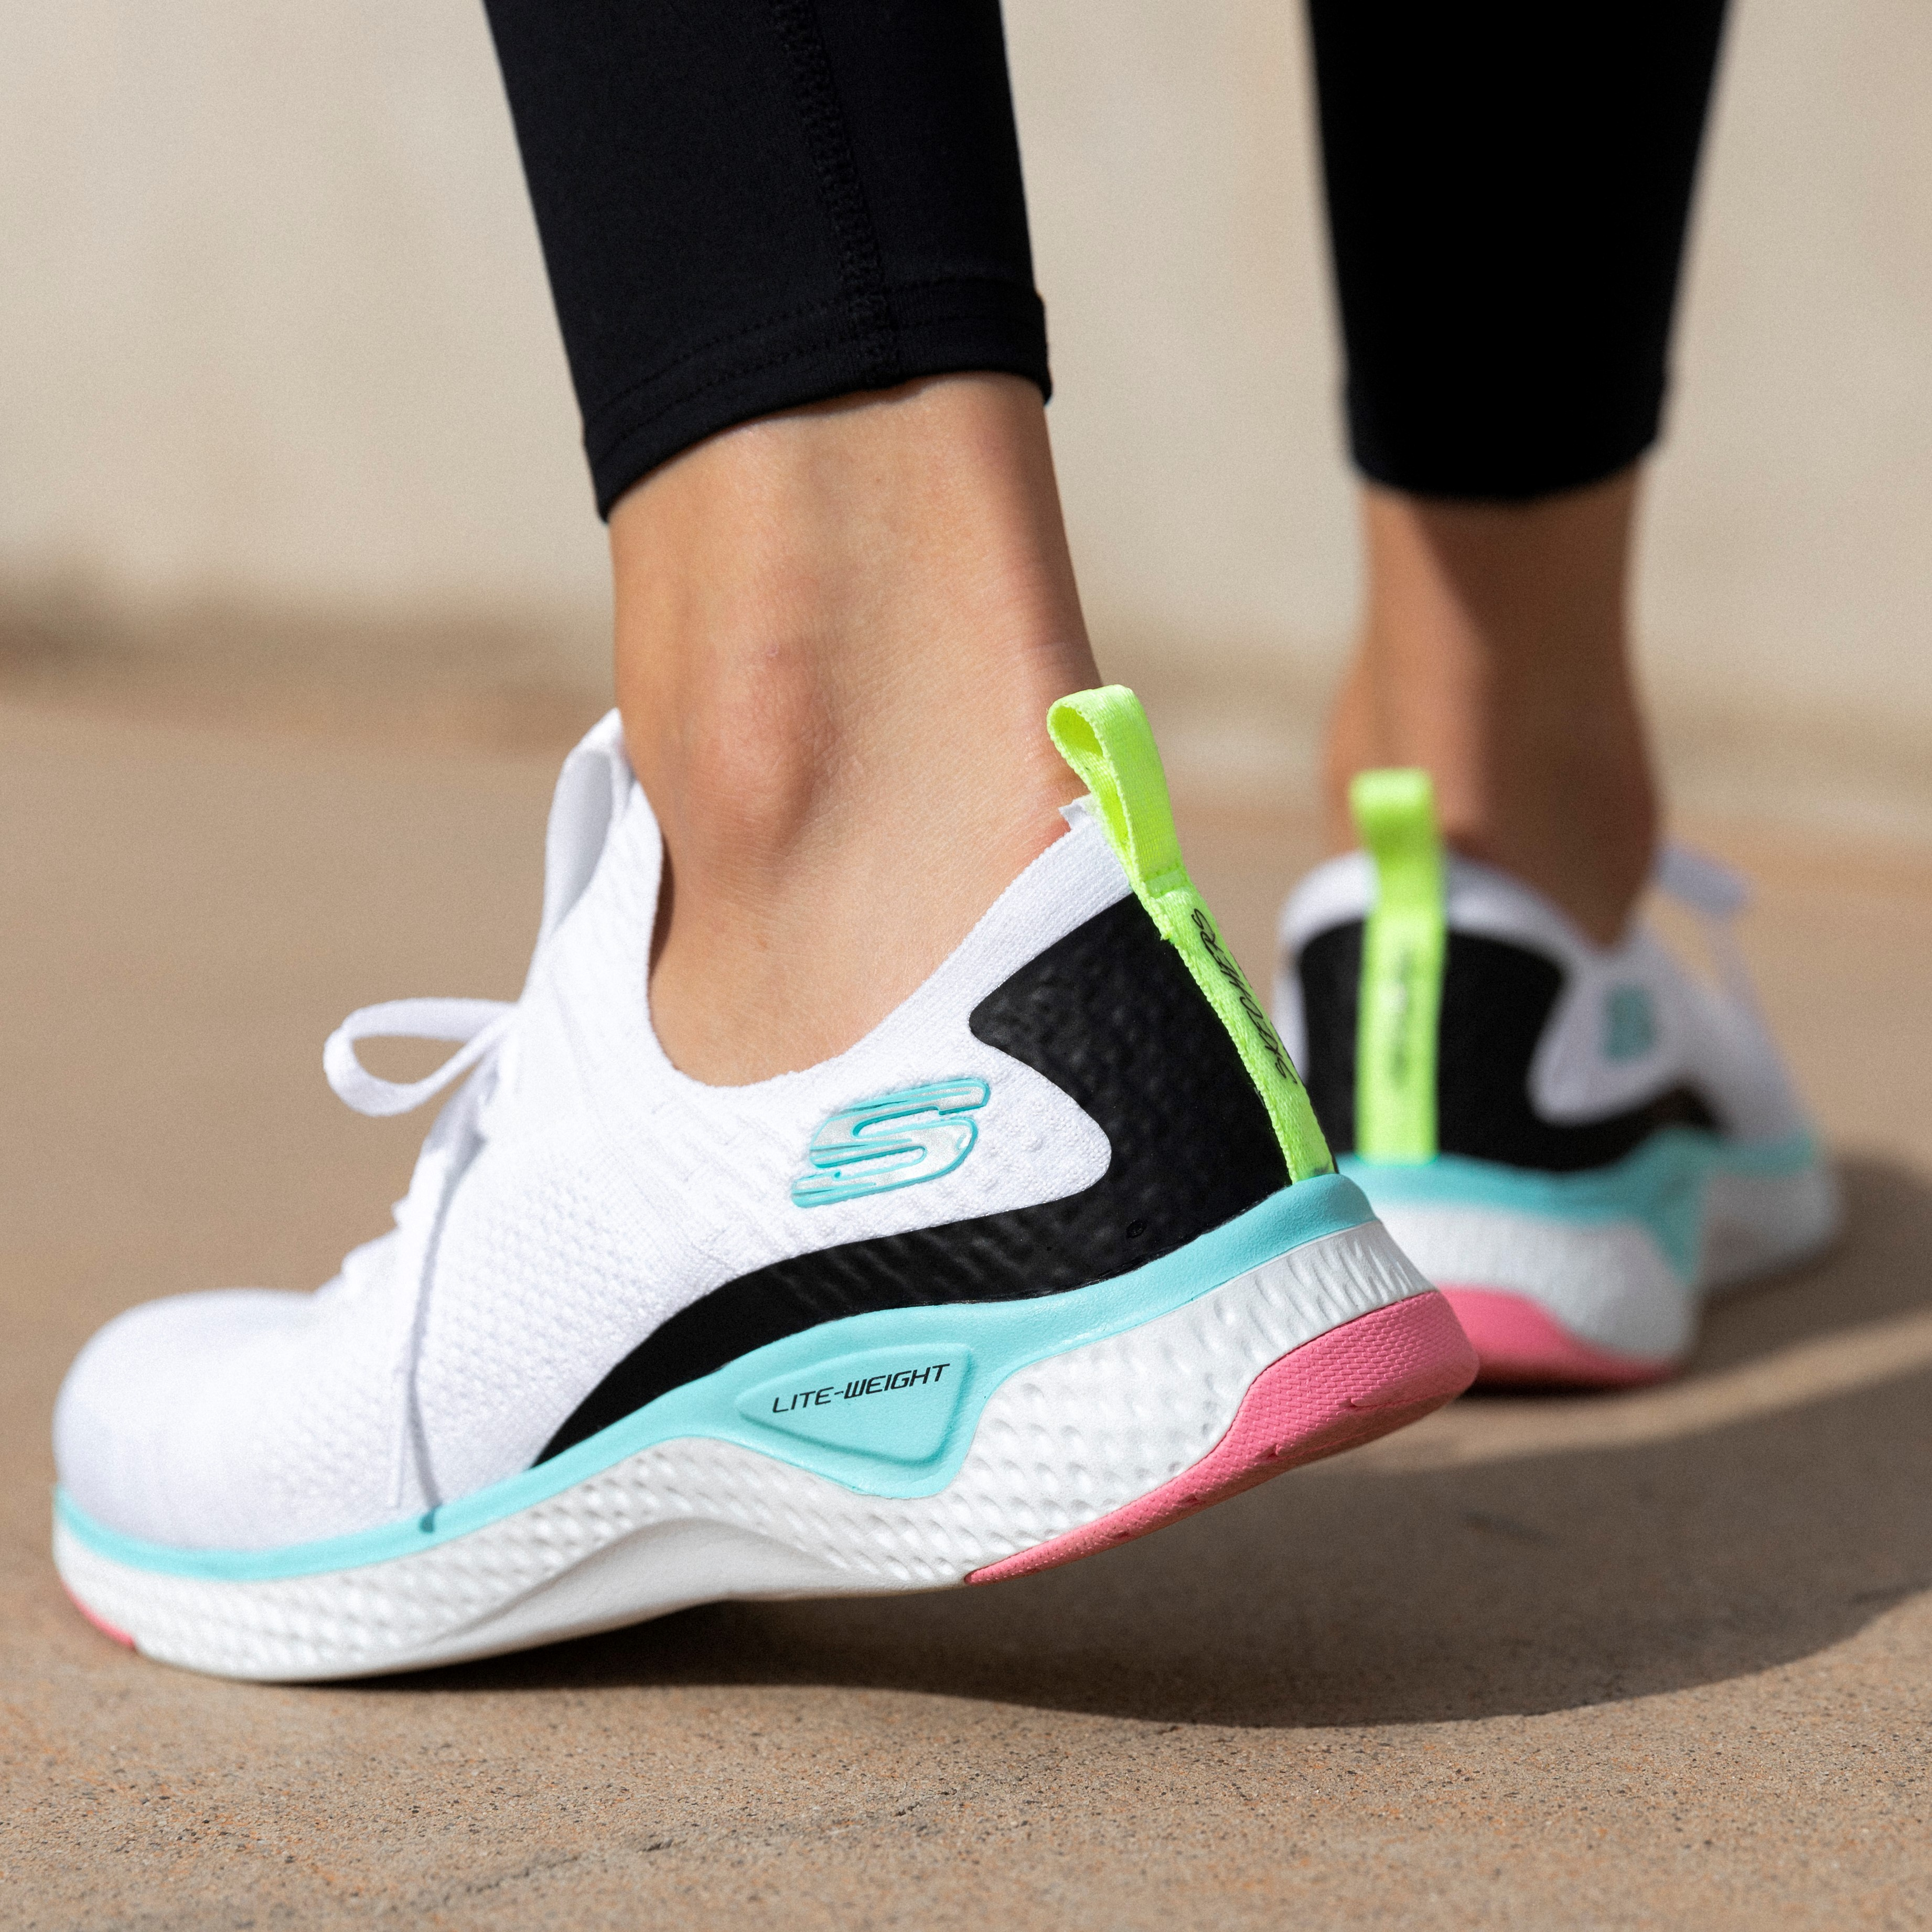 Close up photo of Skechers runners